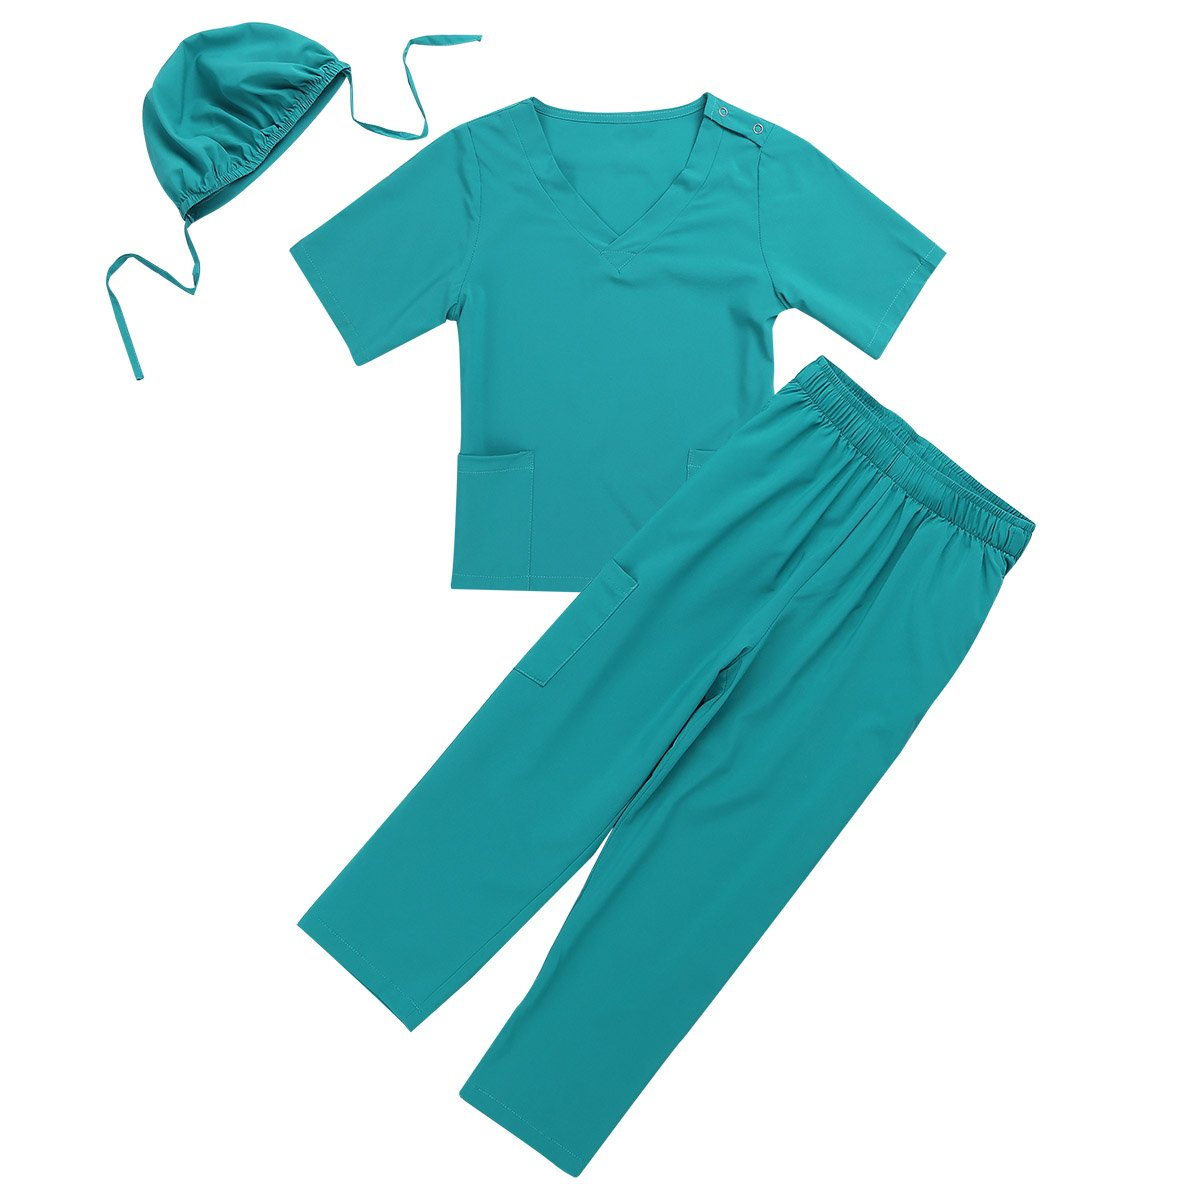 ACSUSS Kids Boys Girls Halloween Surgeon Doctor Cosplay Costumes Surgical Lab Coat with Cap Outfits